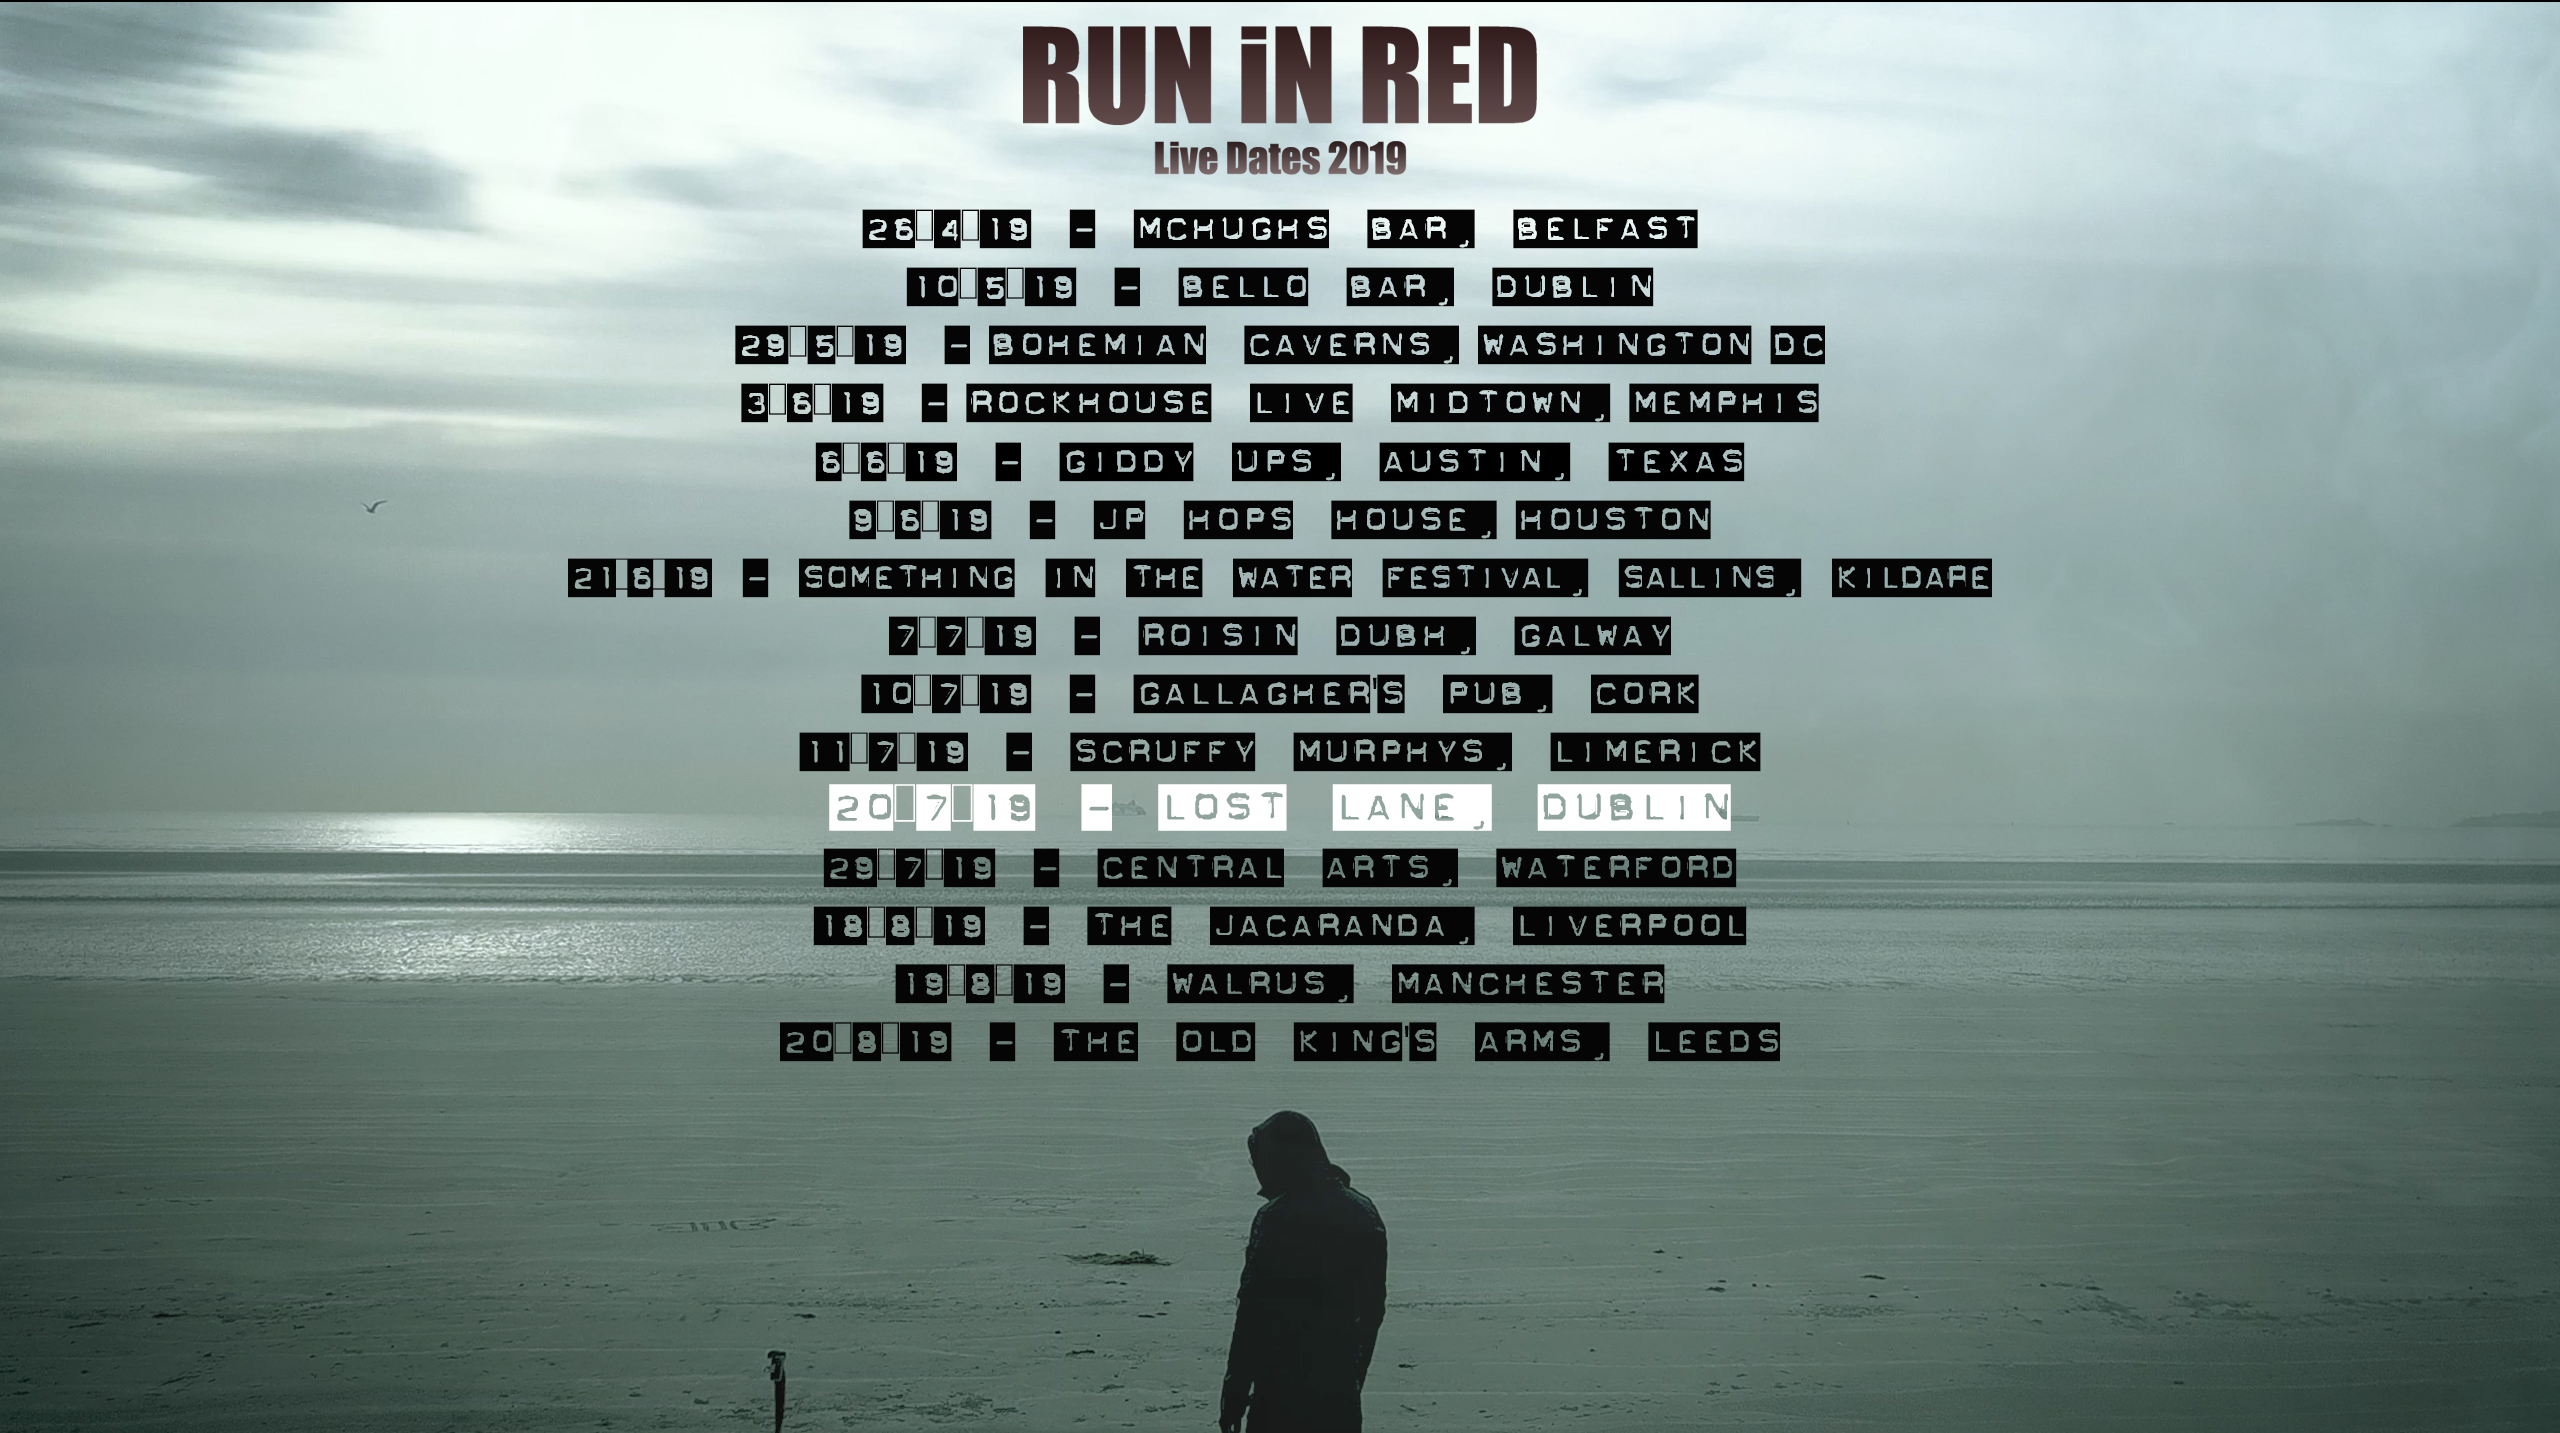 RUN iN RED LiVE dates 2019